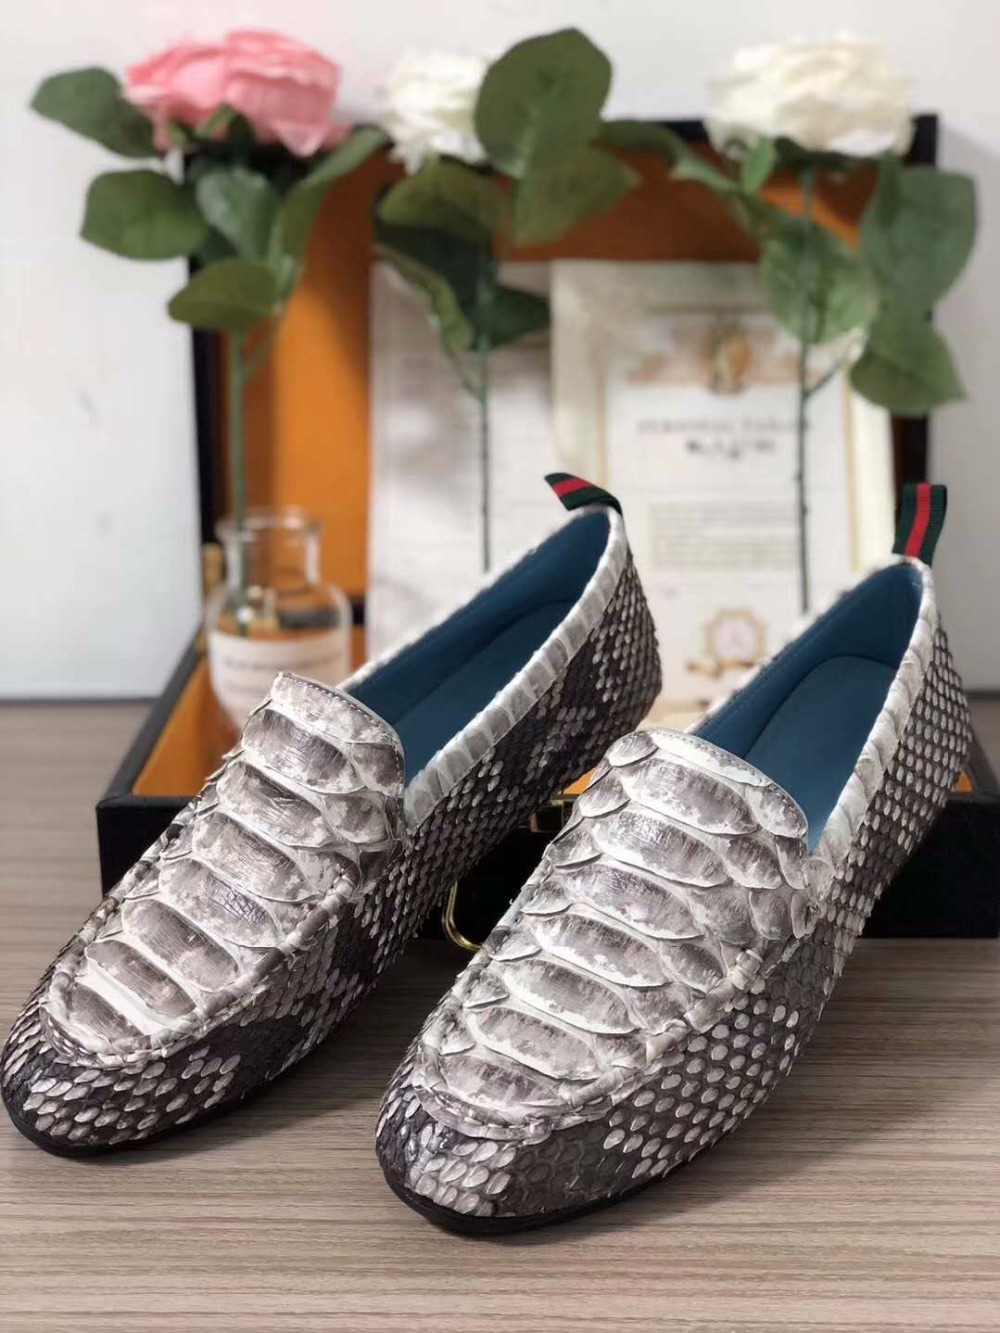 2018 100% Genuine real genuine python skin men shoe luxury quality black color with cowhide skin lining free shipping 2018 genuine real genuine python skin men shoe top quality snake skin handmade men shoe black blue color free shipping